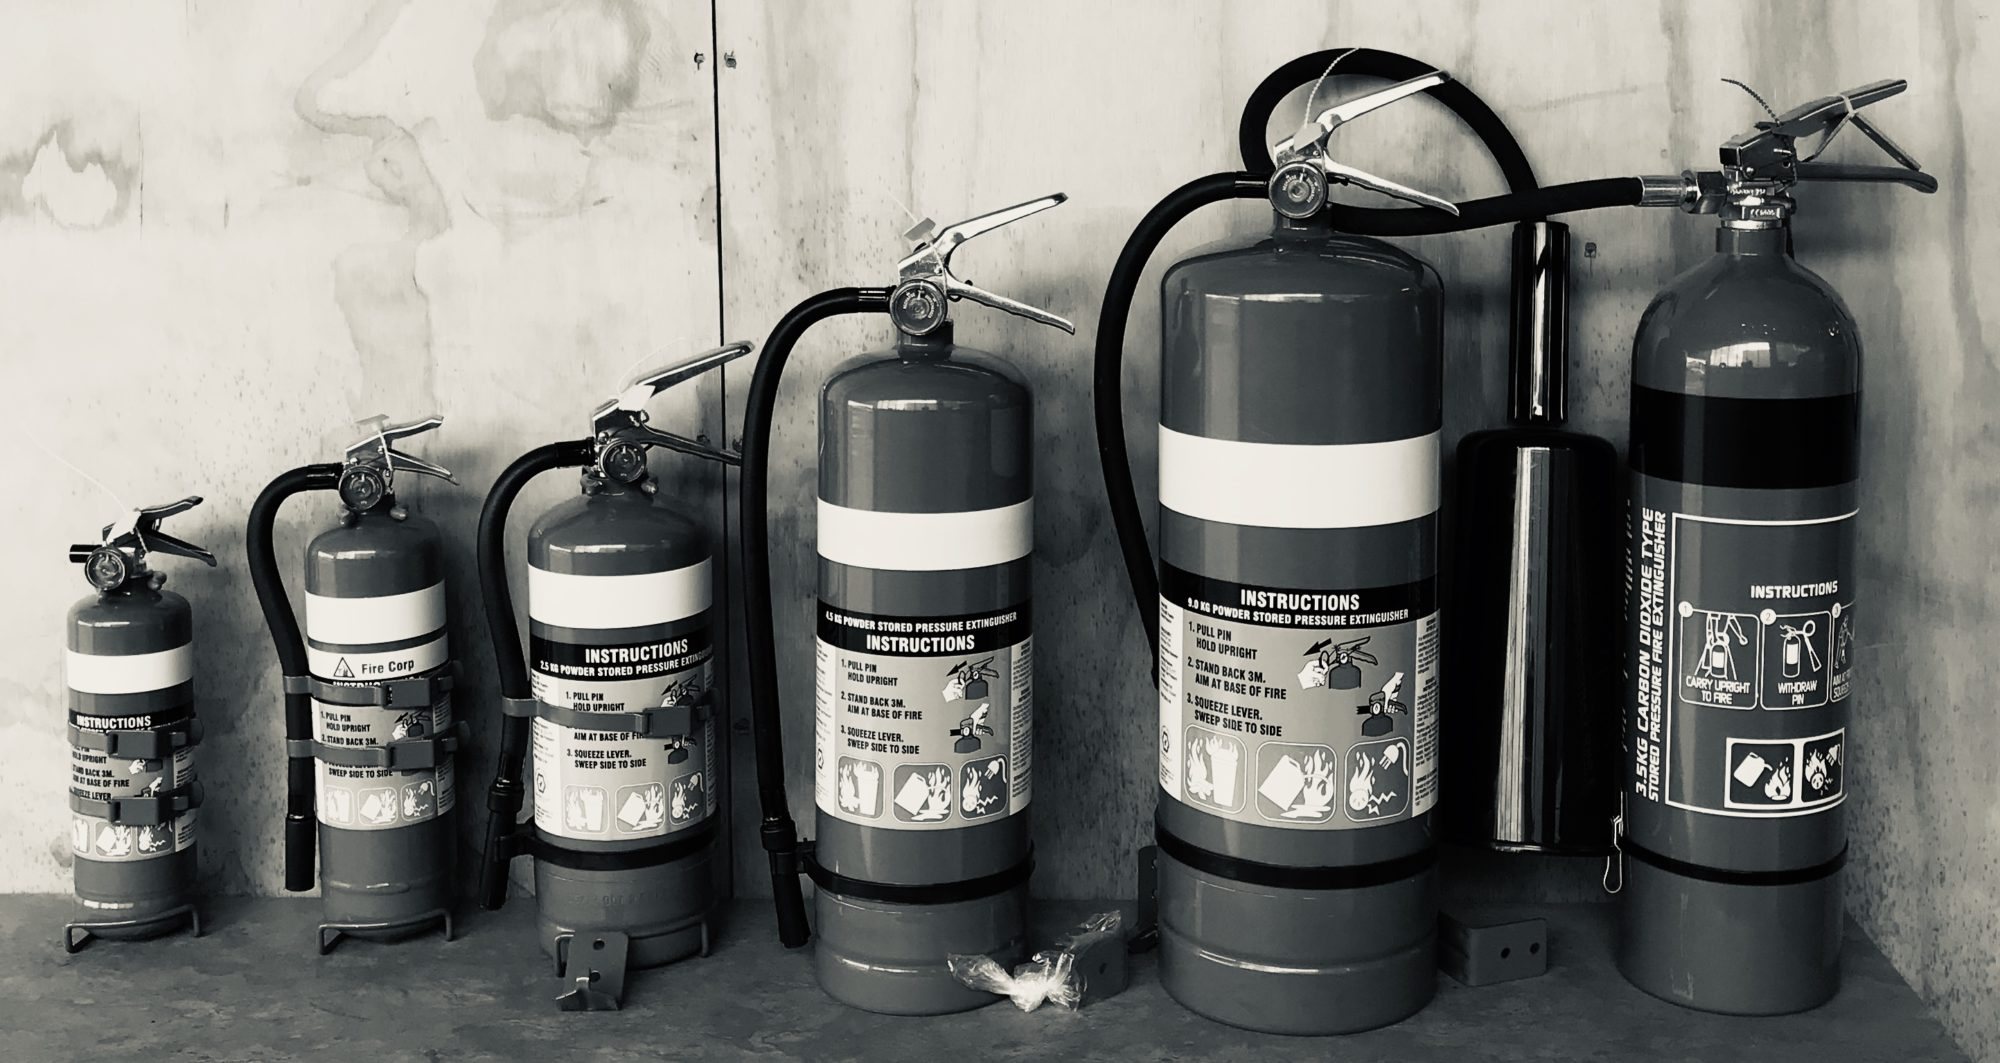 FIRE EXTINGUISHERS LTD